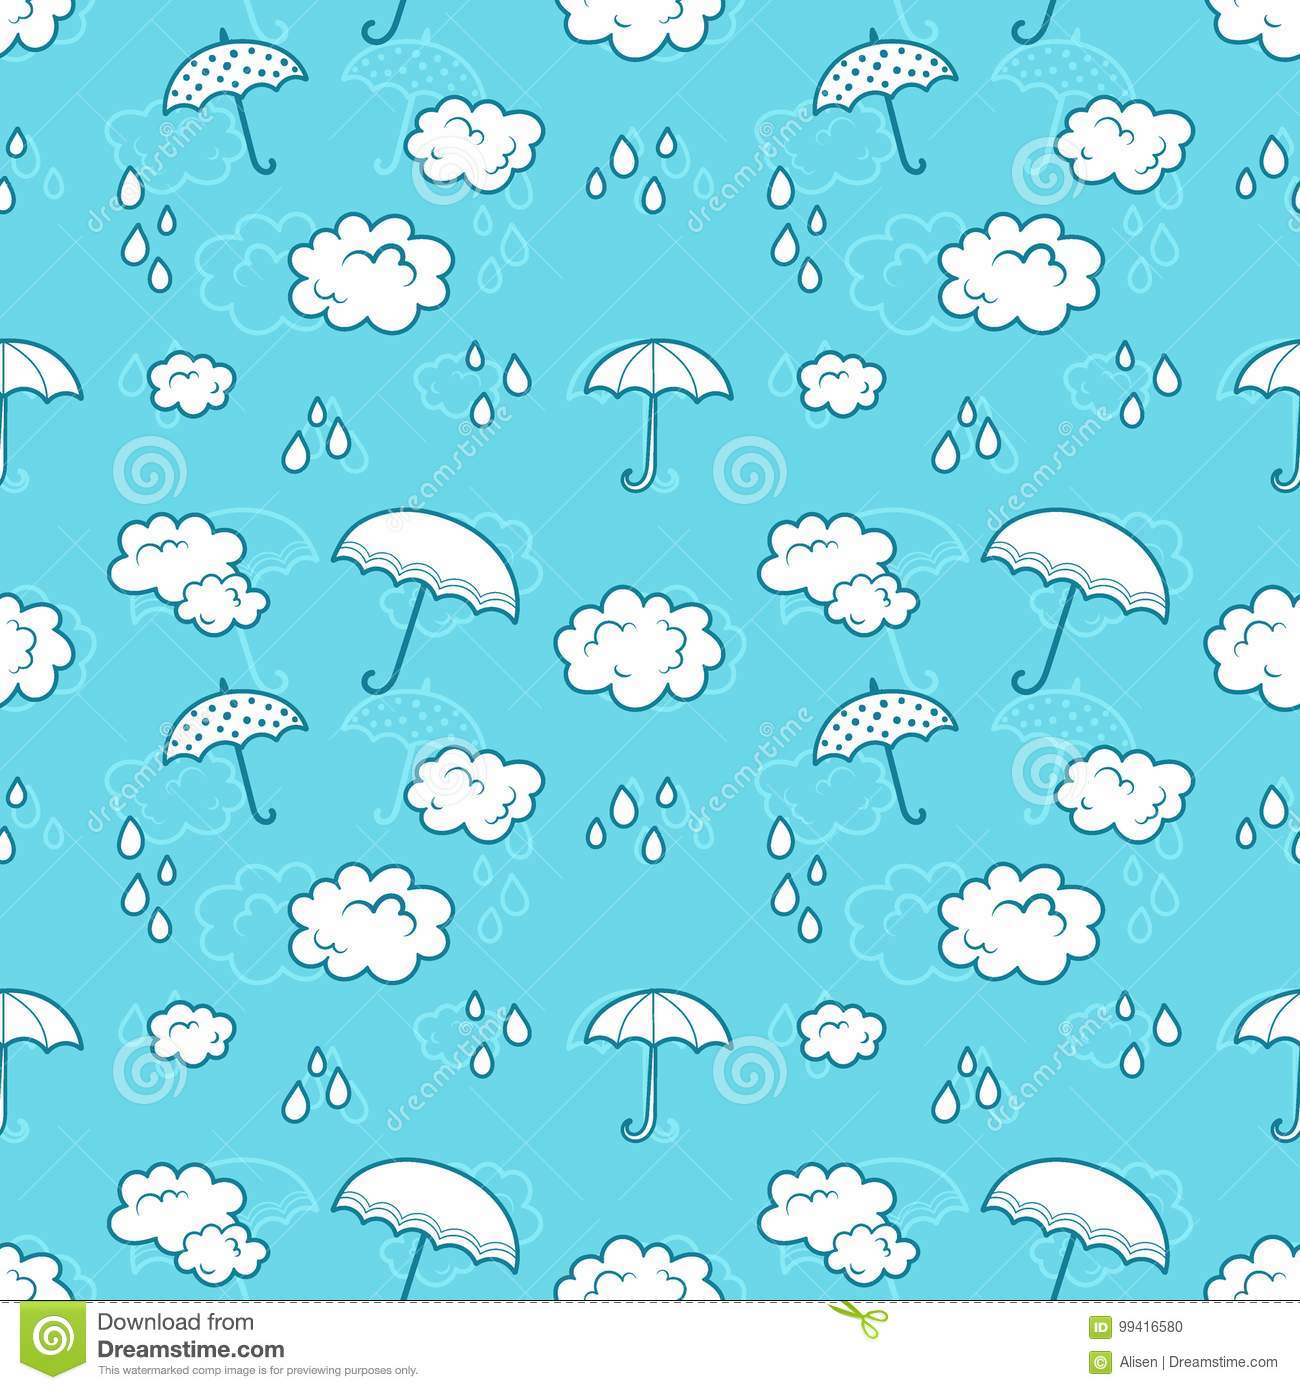 graphic regarding Umbrella Pattern Printable identified as Clouds And Umbrella Cartoon Seamless Pajama Routine For Children